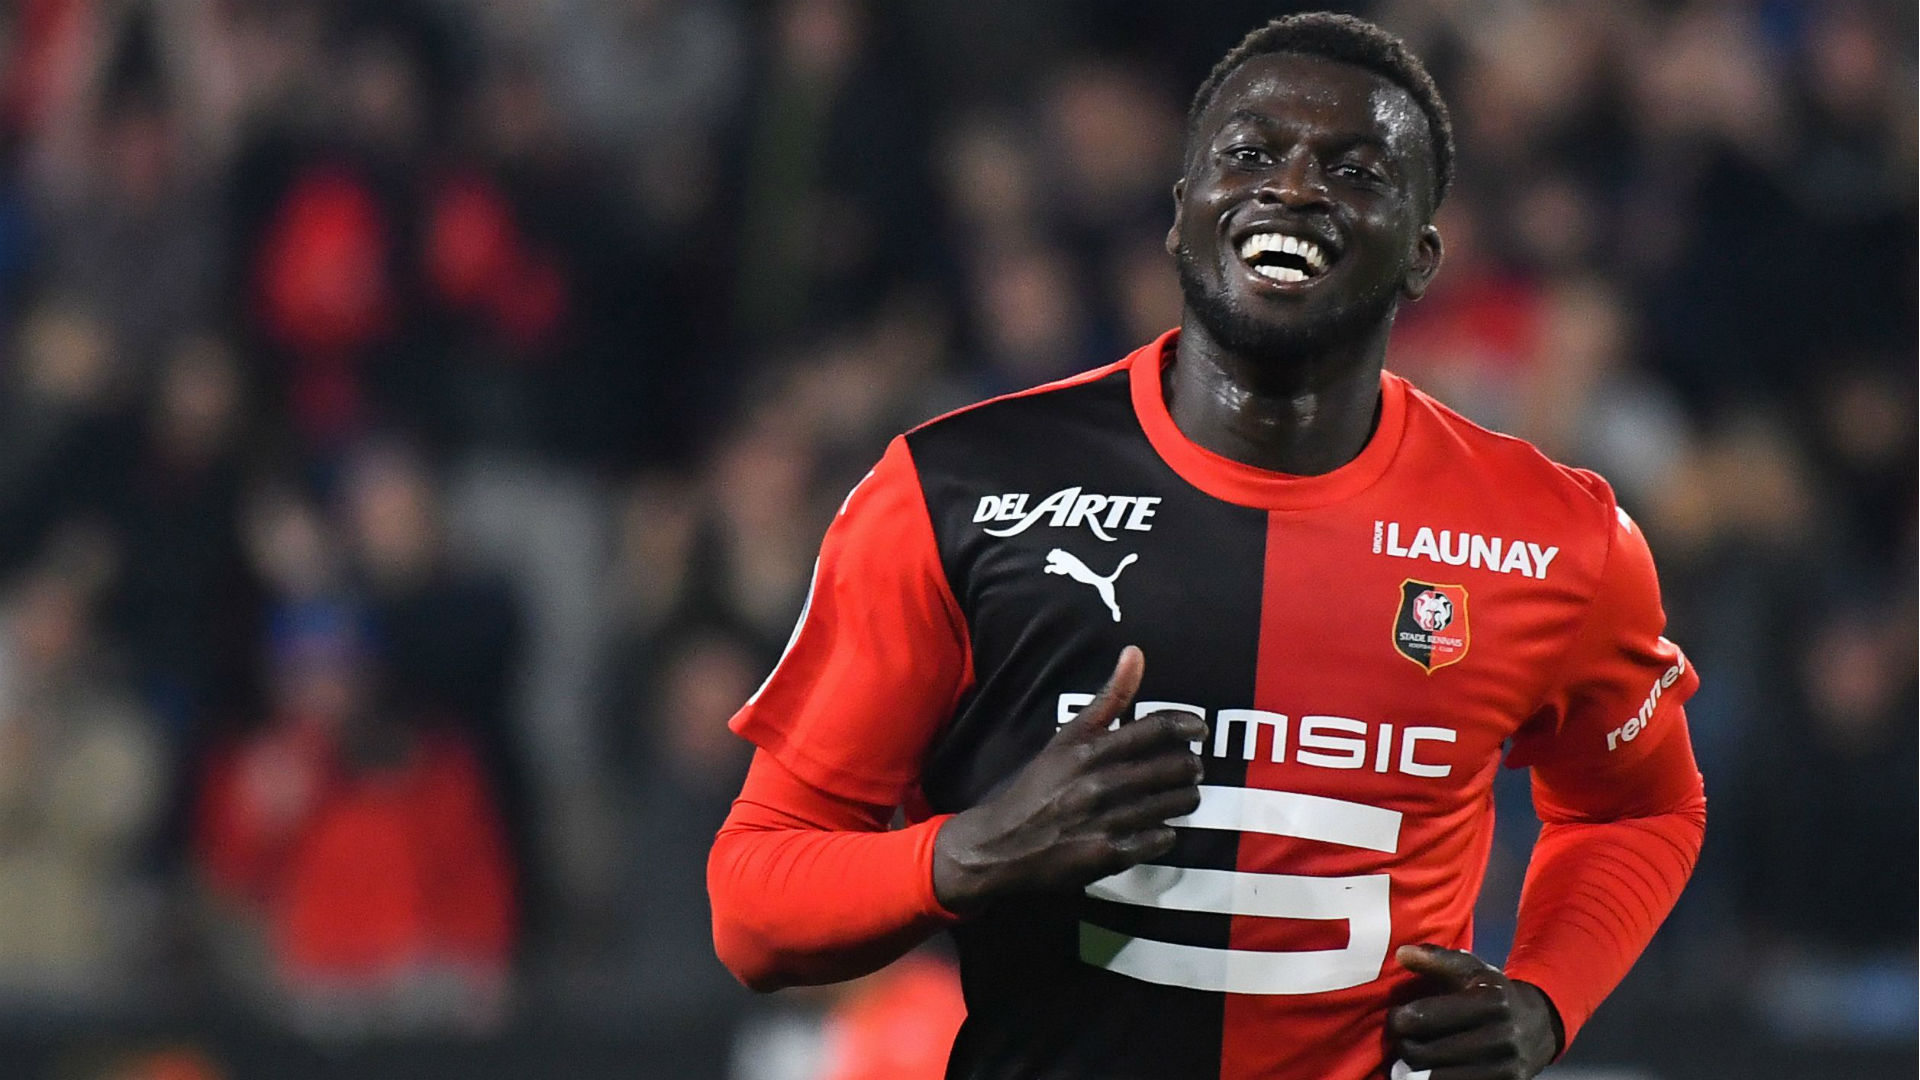 Niang, Thioub and Bahoken score in Rennes' nine-goal thriller against Angers